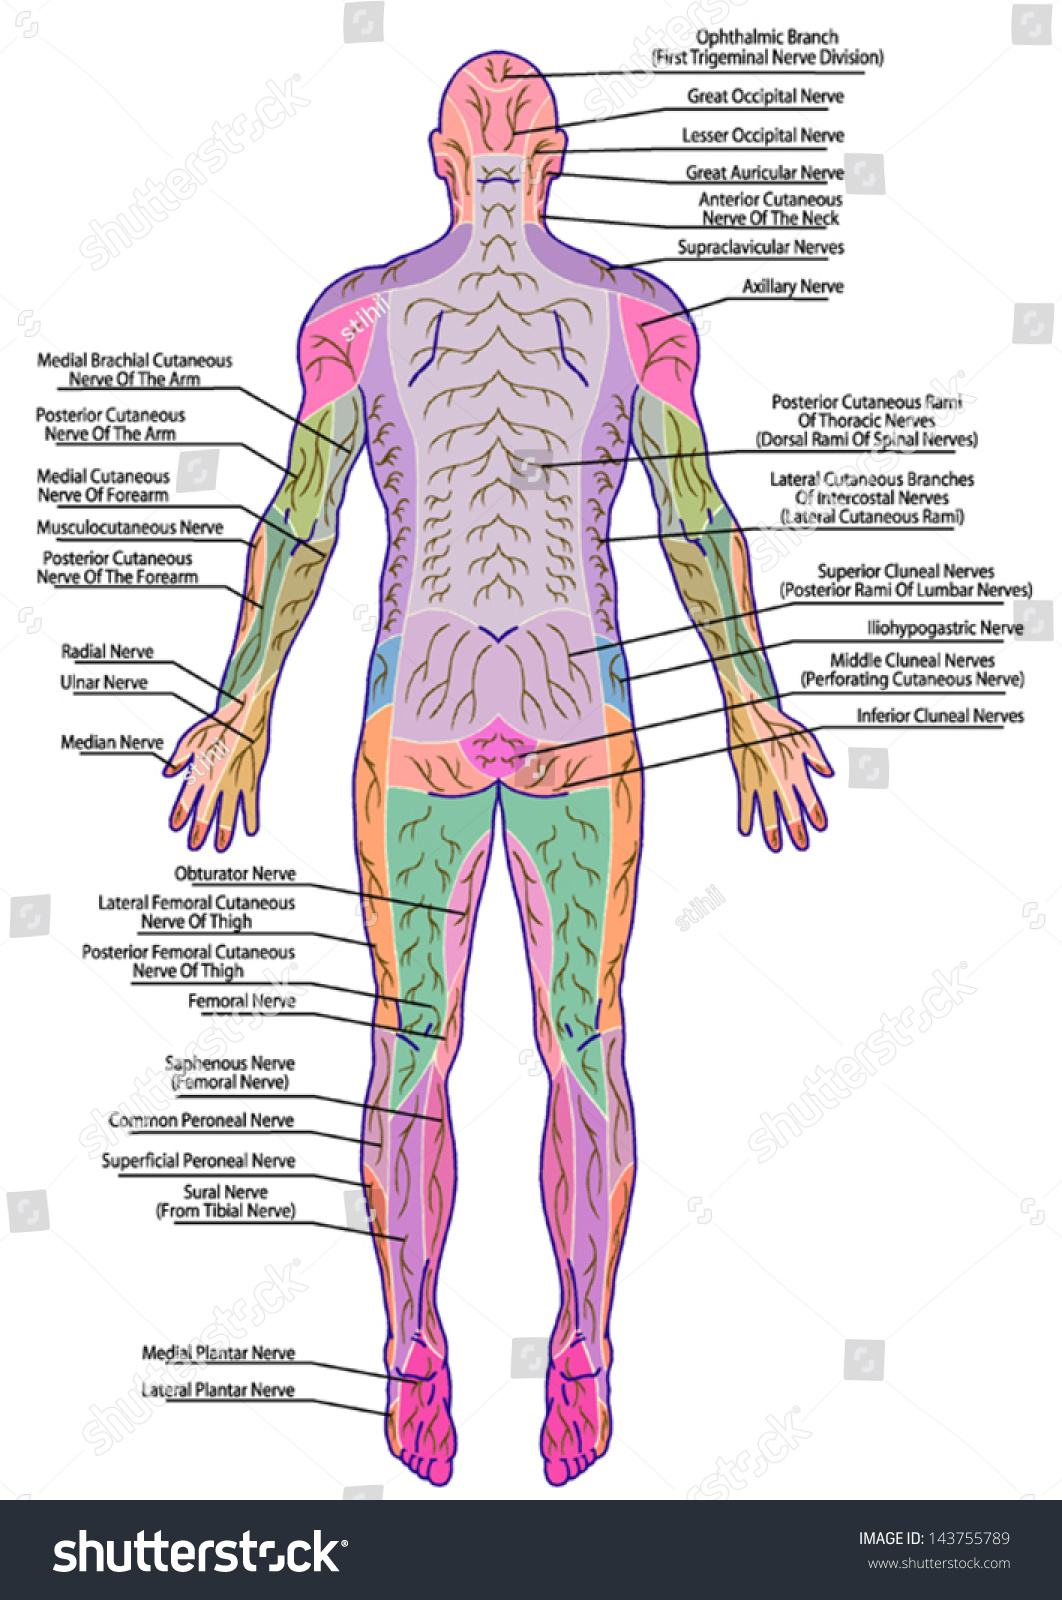 Drawing medical didactic board anatomy human stock vector drawing medical didactic board of anatomy of human pattern of peripheral sensory innervation system pooptronica